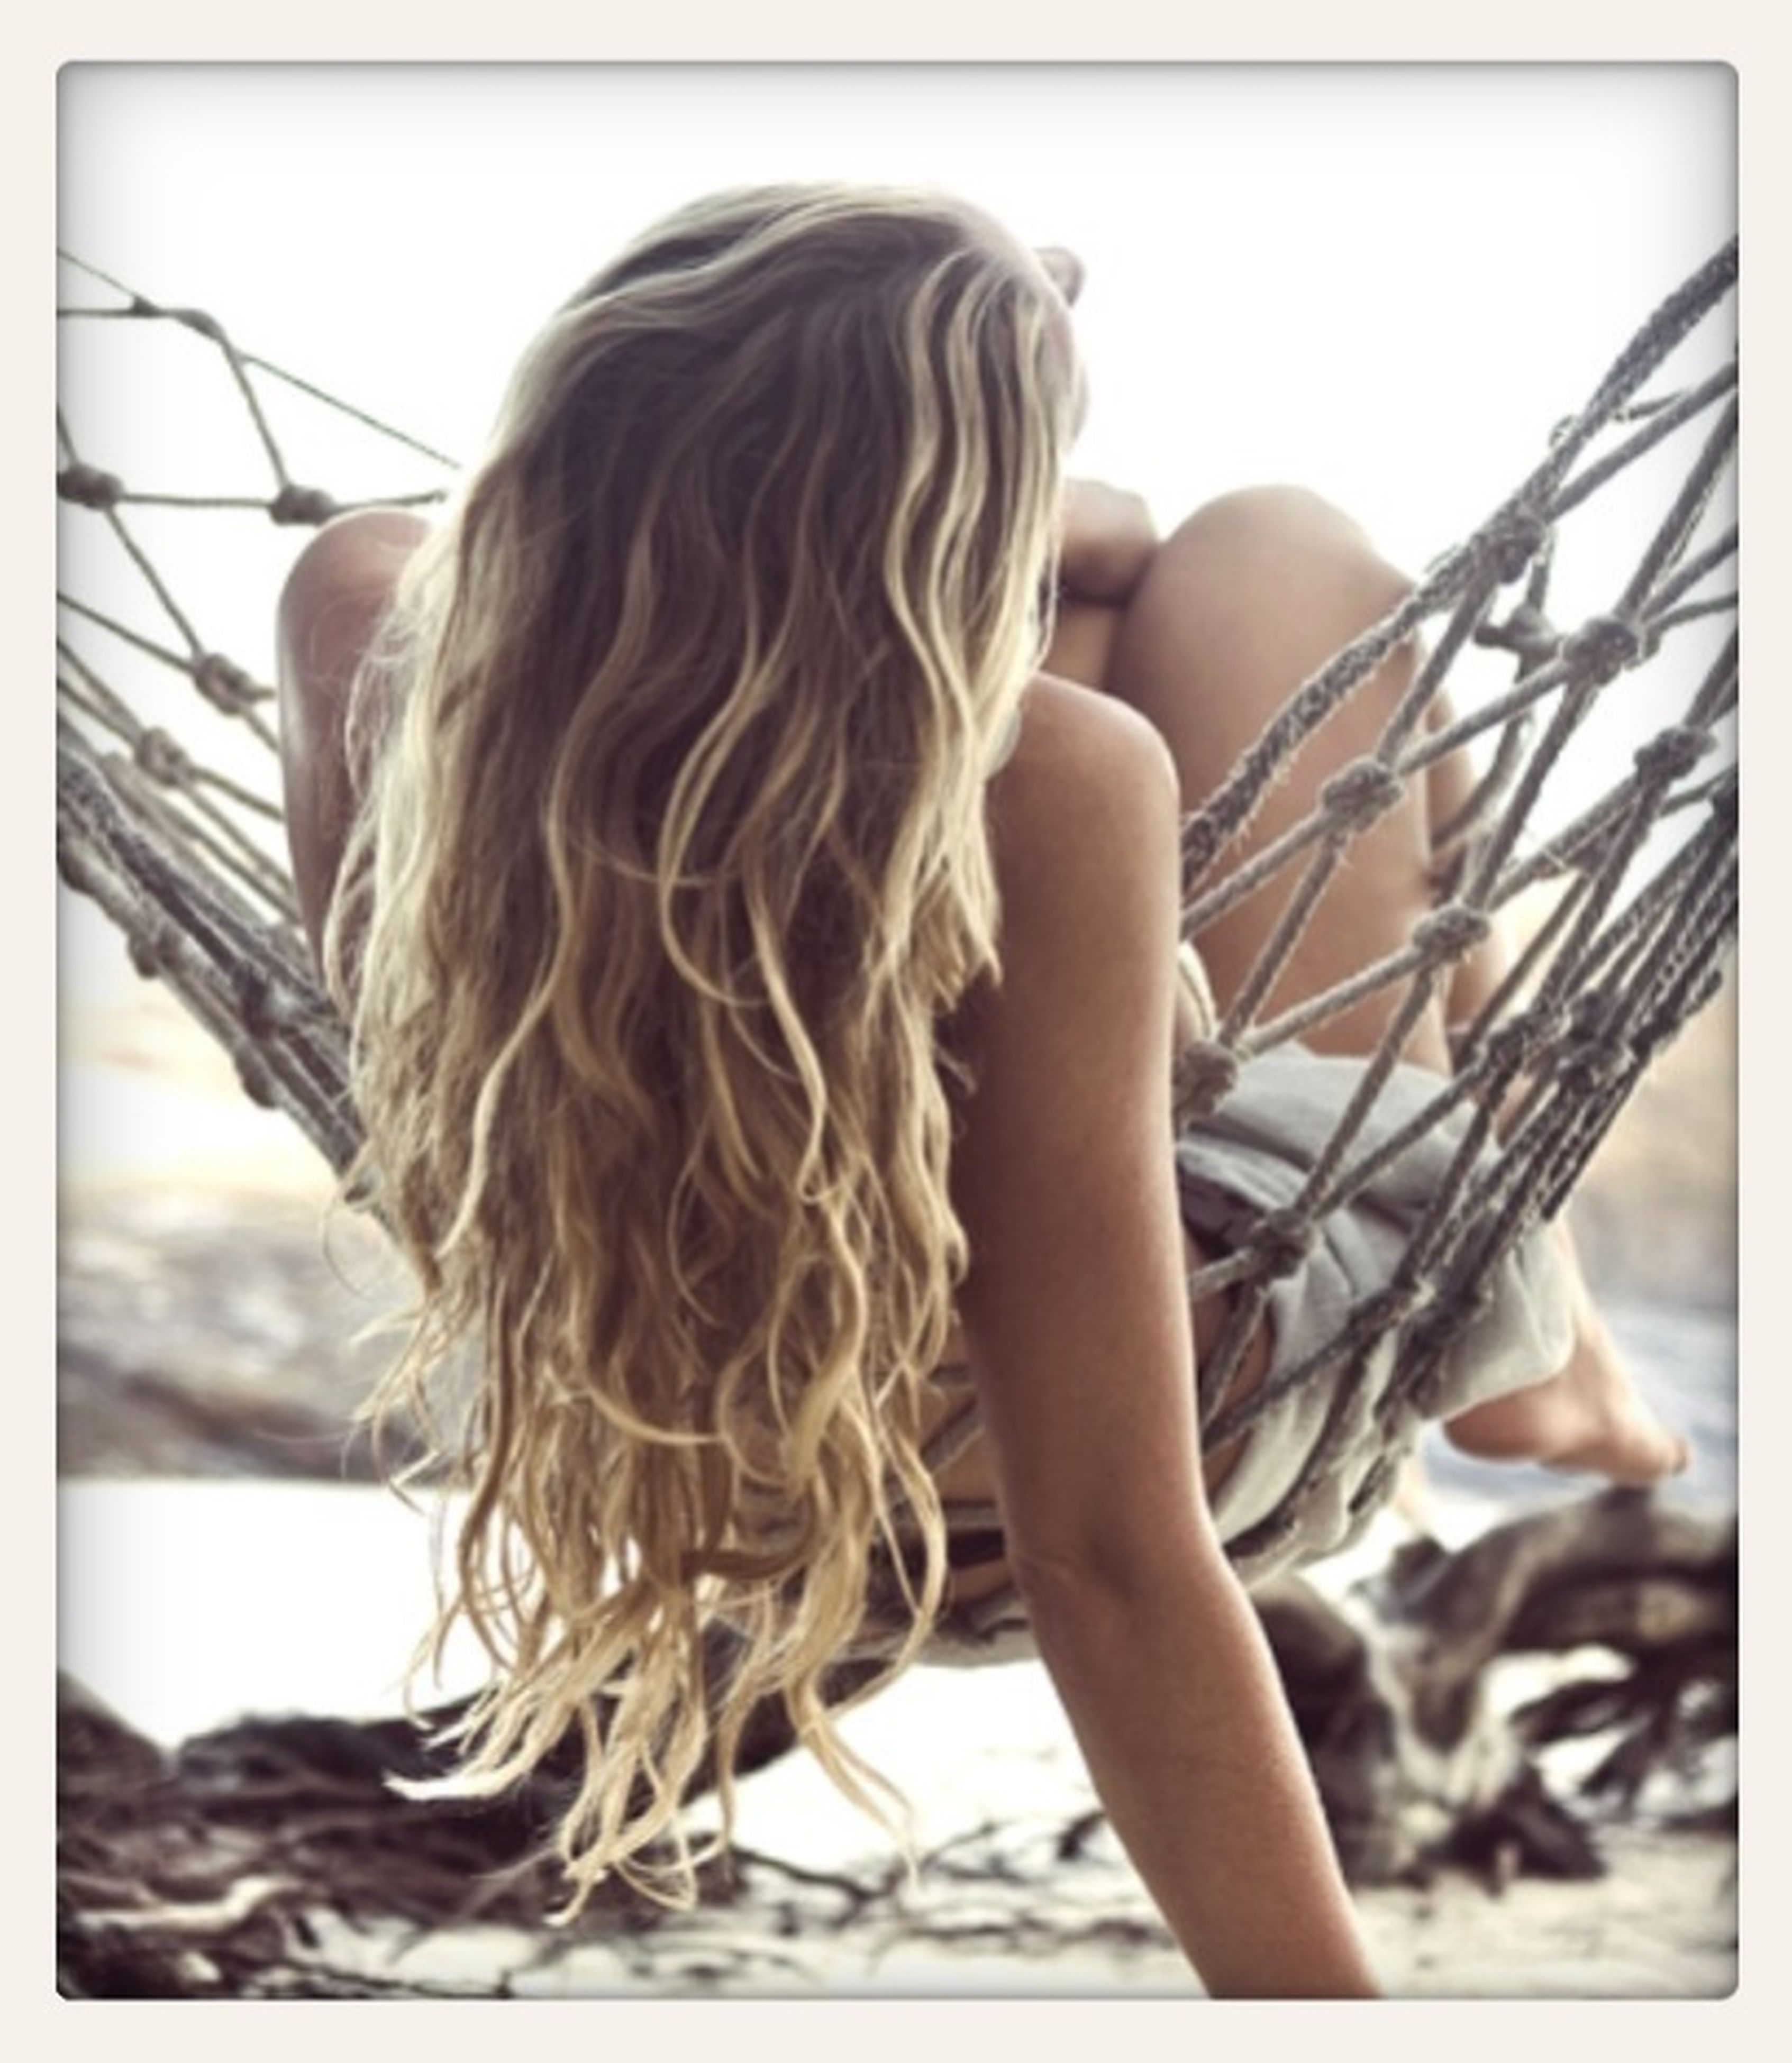 transfer print, lifestyles, long hair, auto post production filter, young women, leisure activity, young adult, person, rear view, indoors, side view, focus on foreground, close-up, casual clothing, sitting, childhood, sunlight